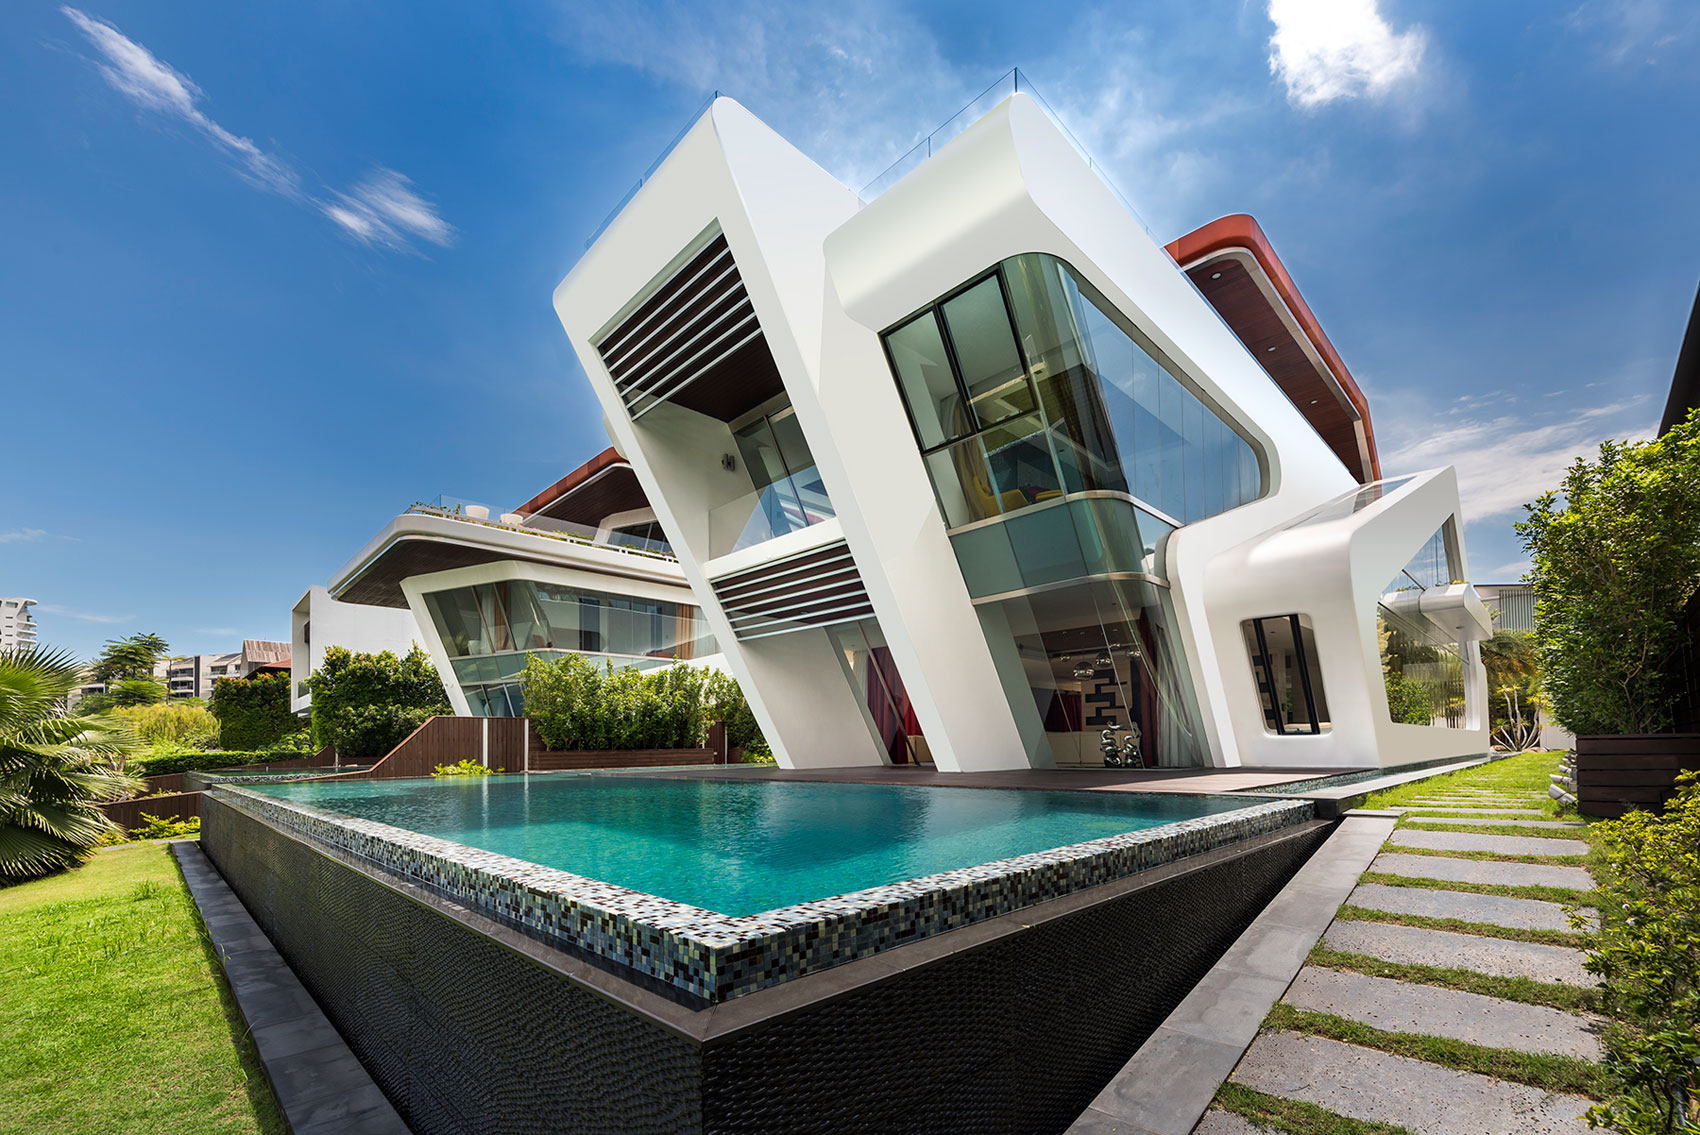 Mercurio design lab create a modern villa in singapore Modern house website